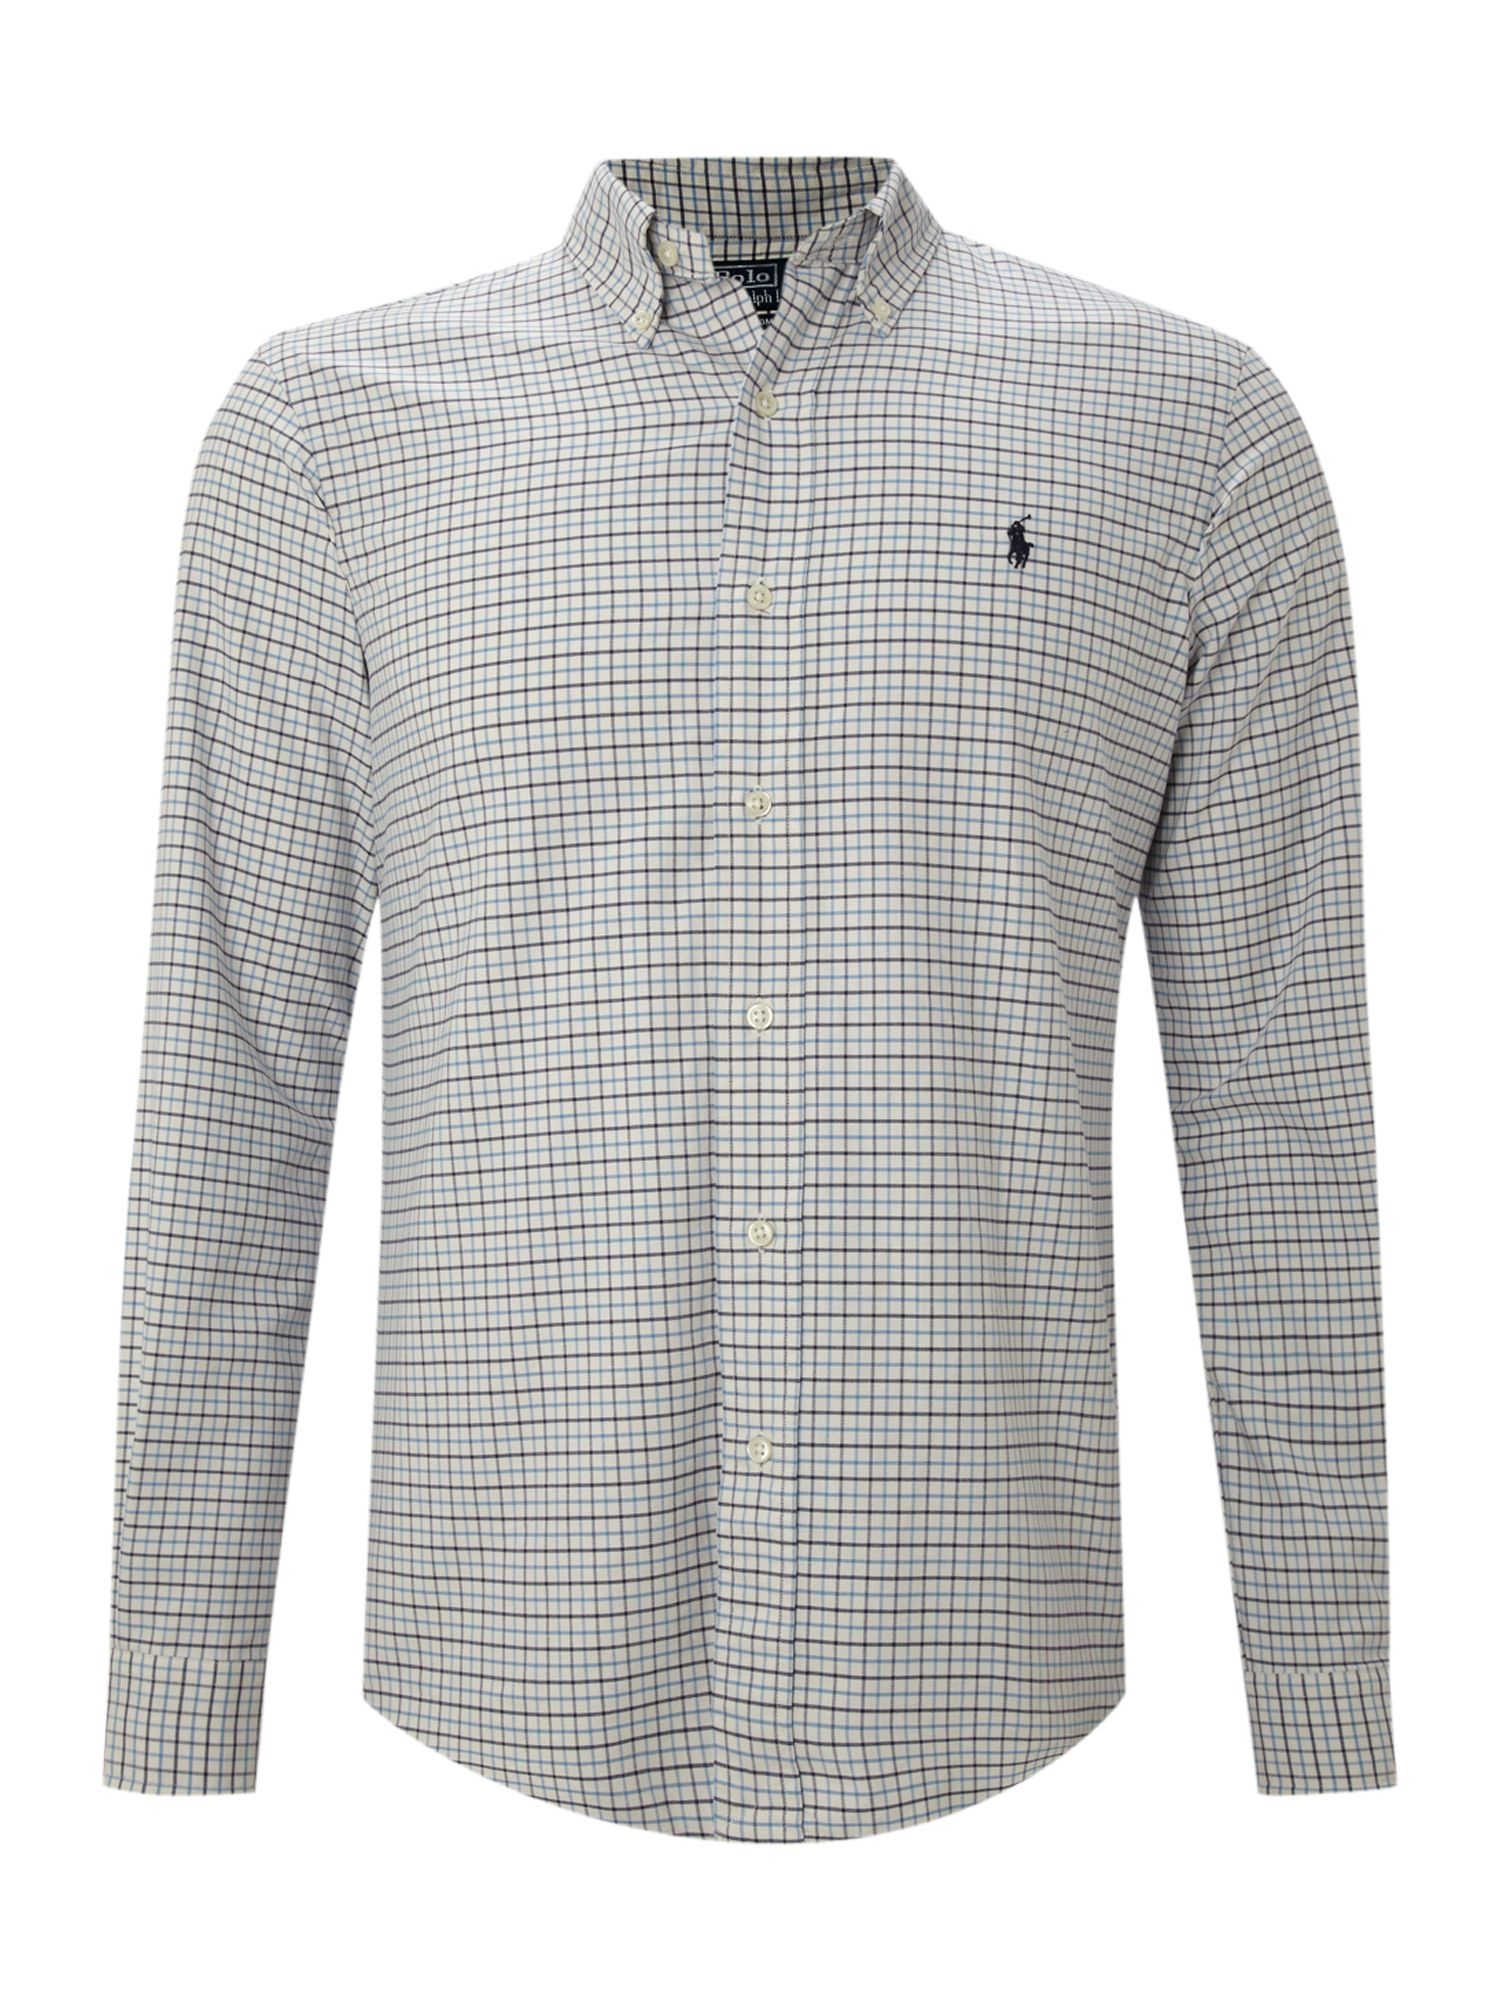 Polo ralph lauren long sleeved button down collared shirt for Polo shirts without buttons